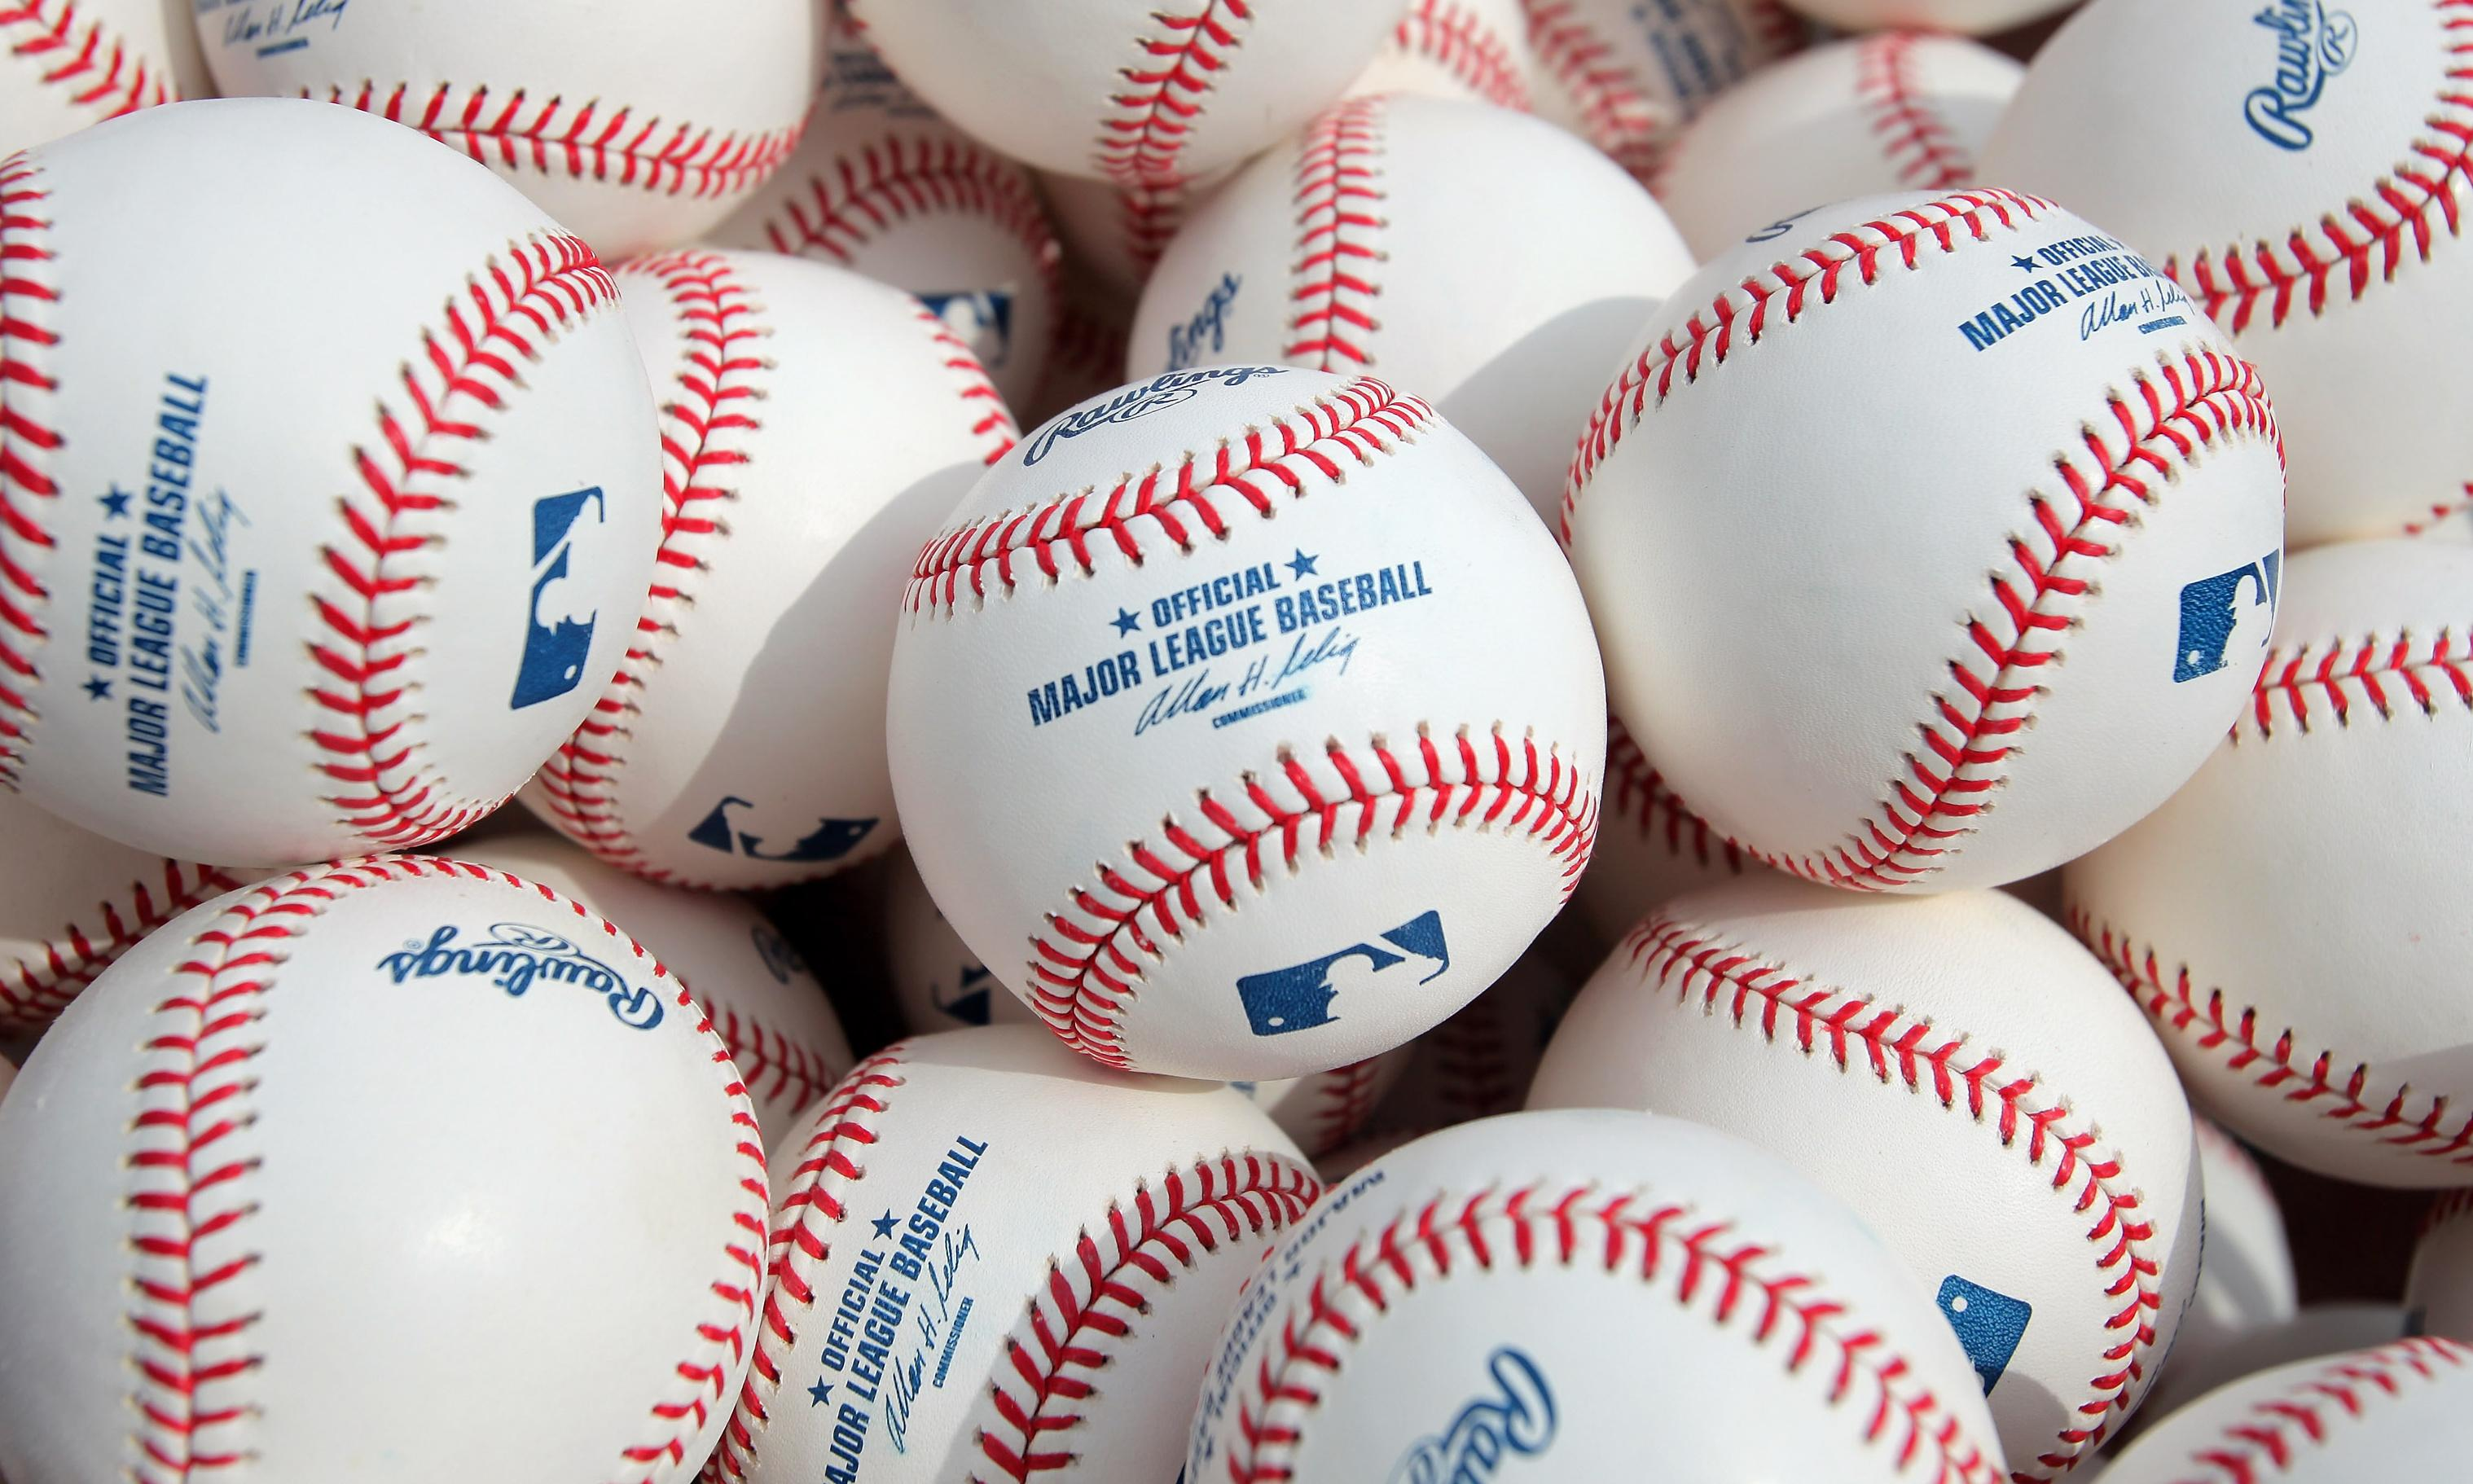 MLB warns players against dangers of over-the-counter sexual enhancers